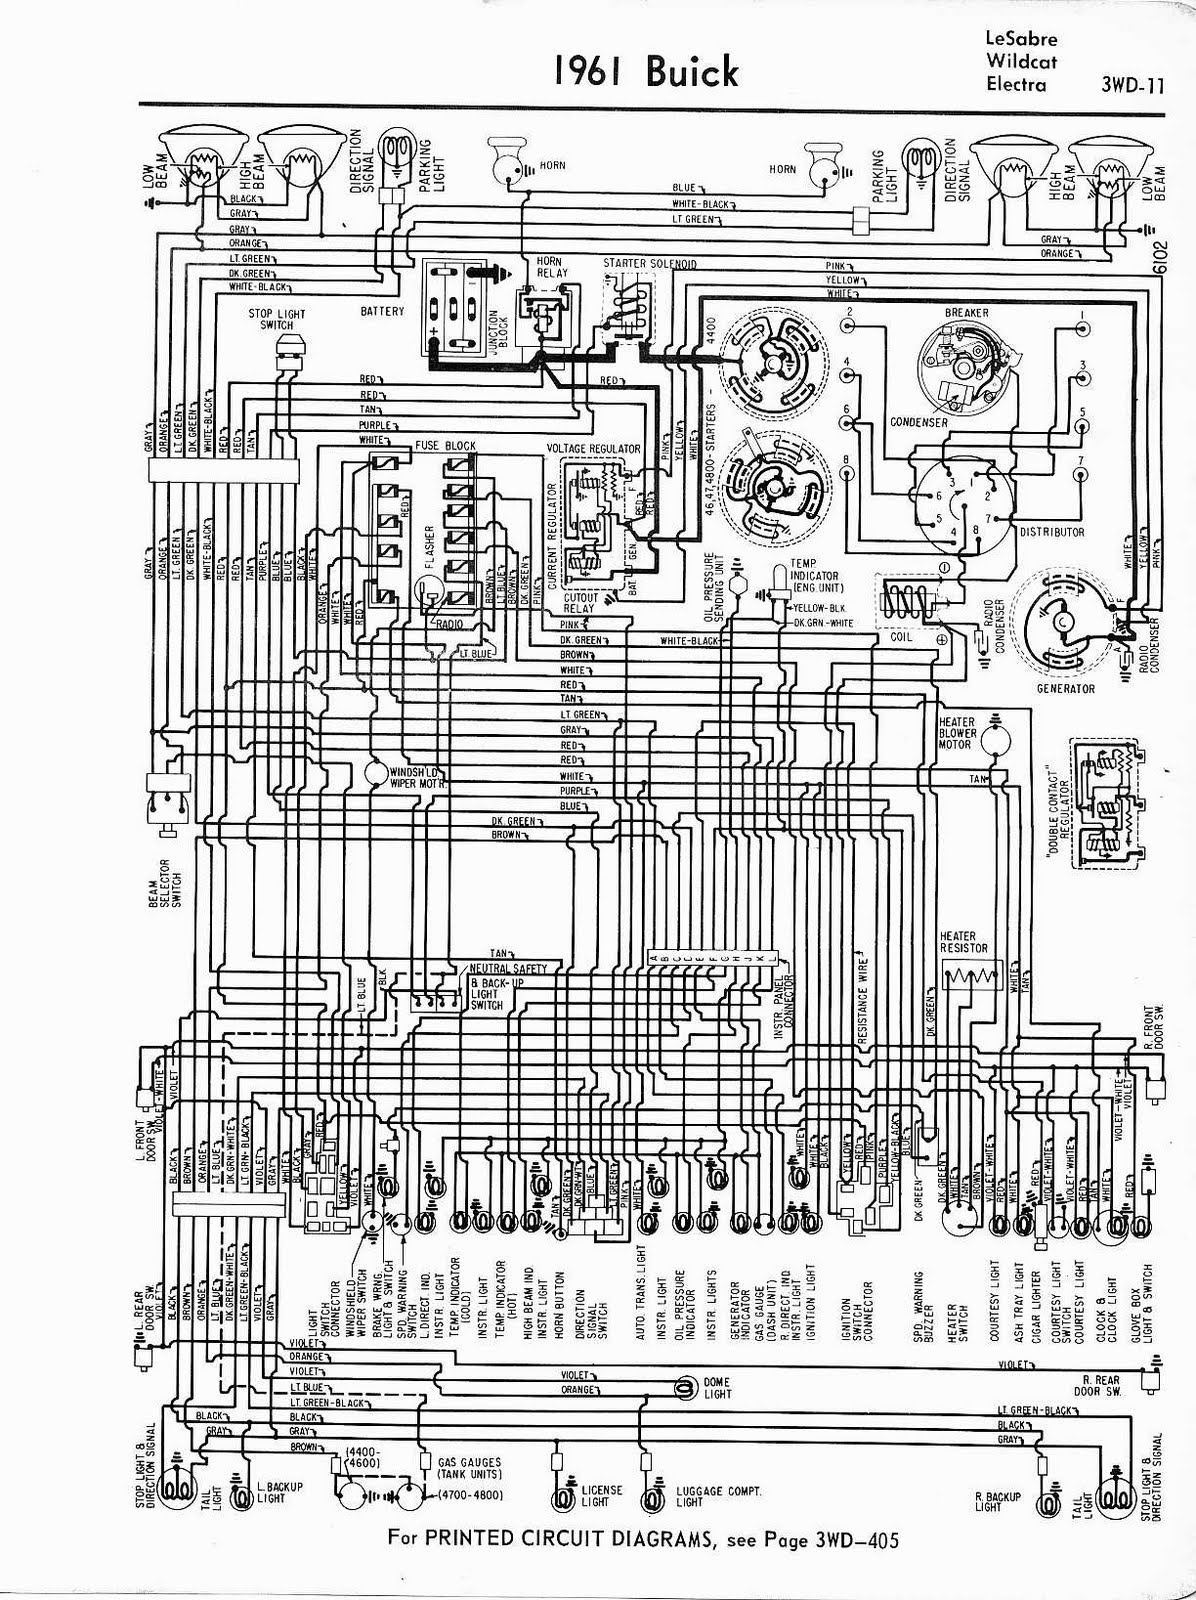 Diagram  1992 Buick Lesabre Schematic Wiring Diagrams